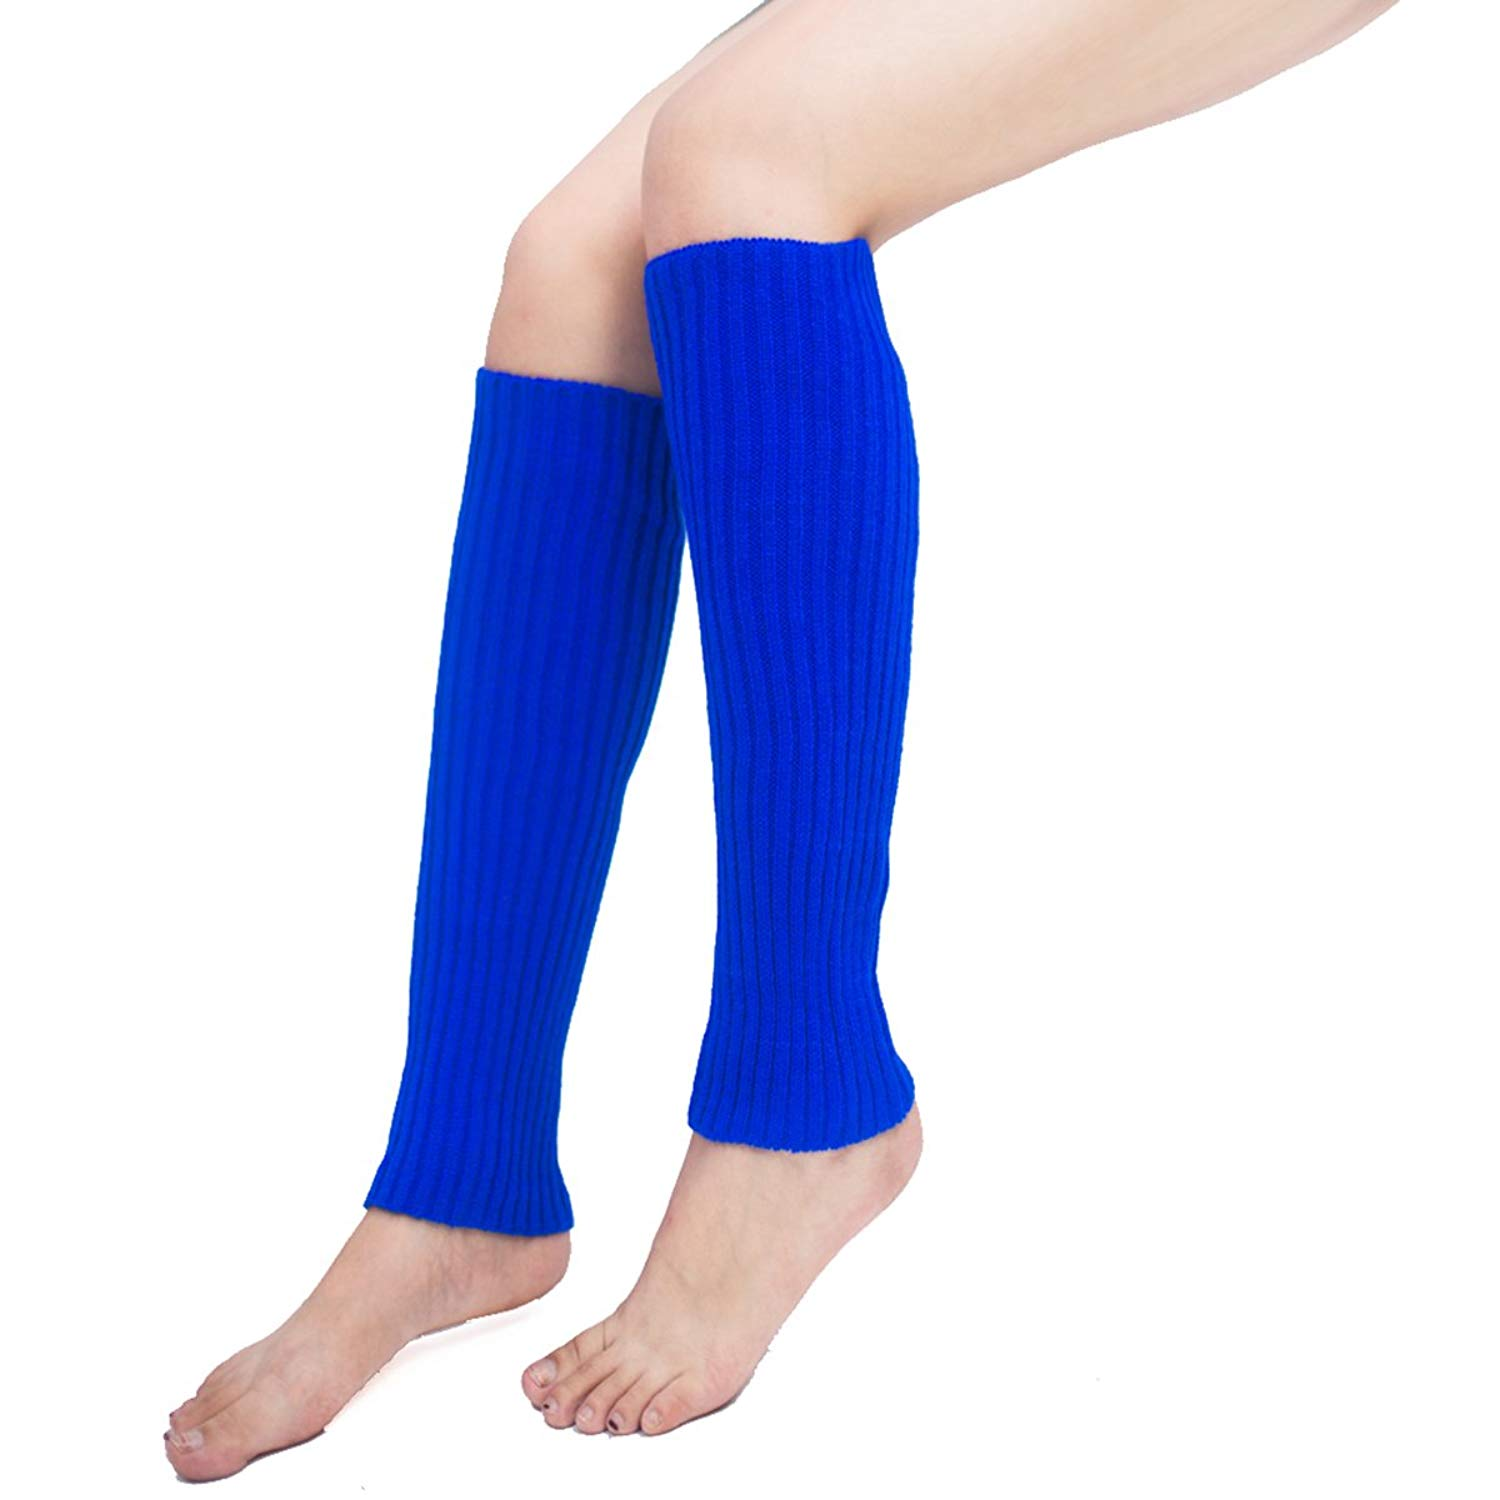 782360de5e48a Get Quotations · Unisex Thigh High Stretch Knit Leg Warmers Ribbed Knit  Dance Sports Leg Warmers